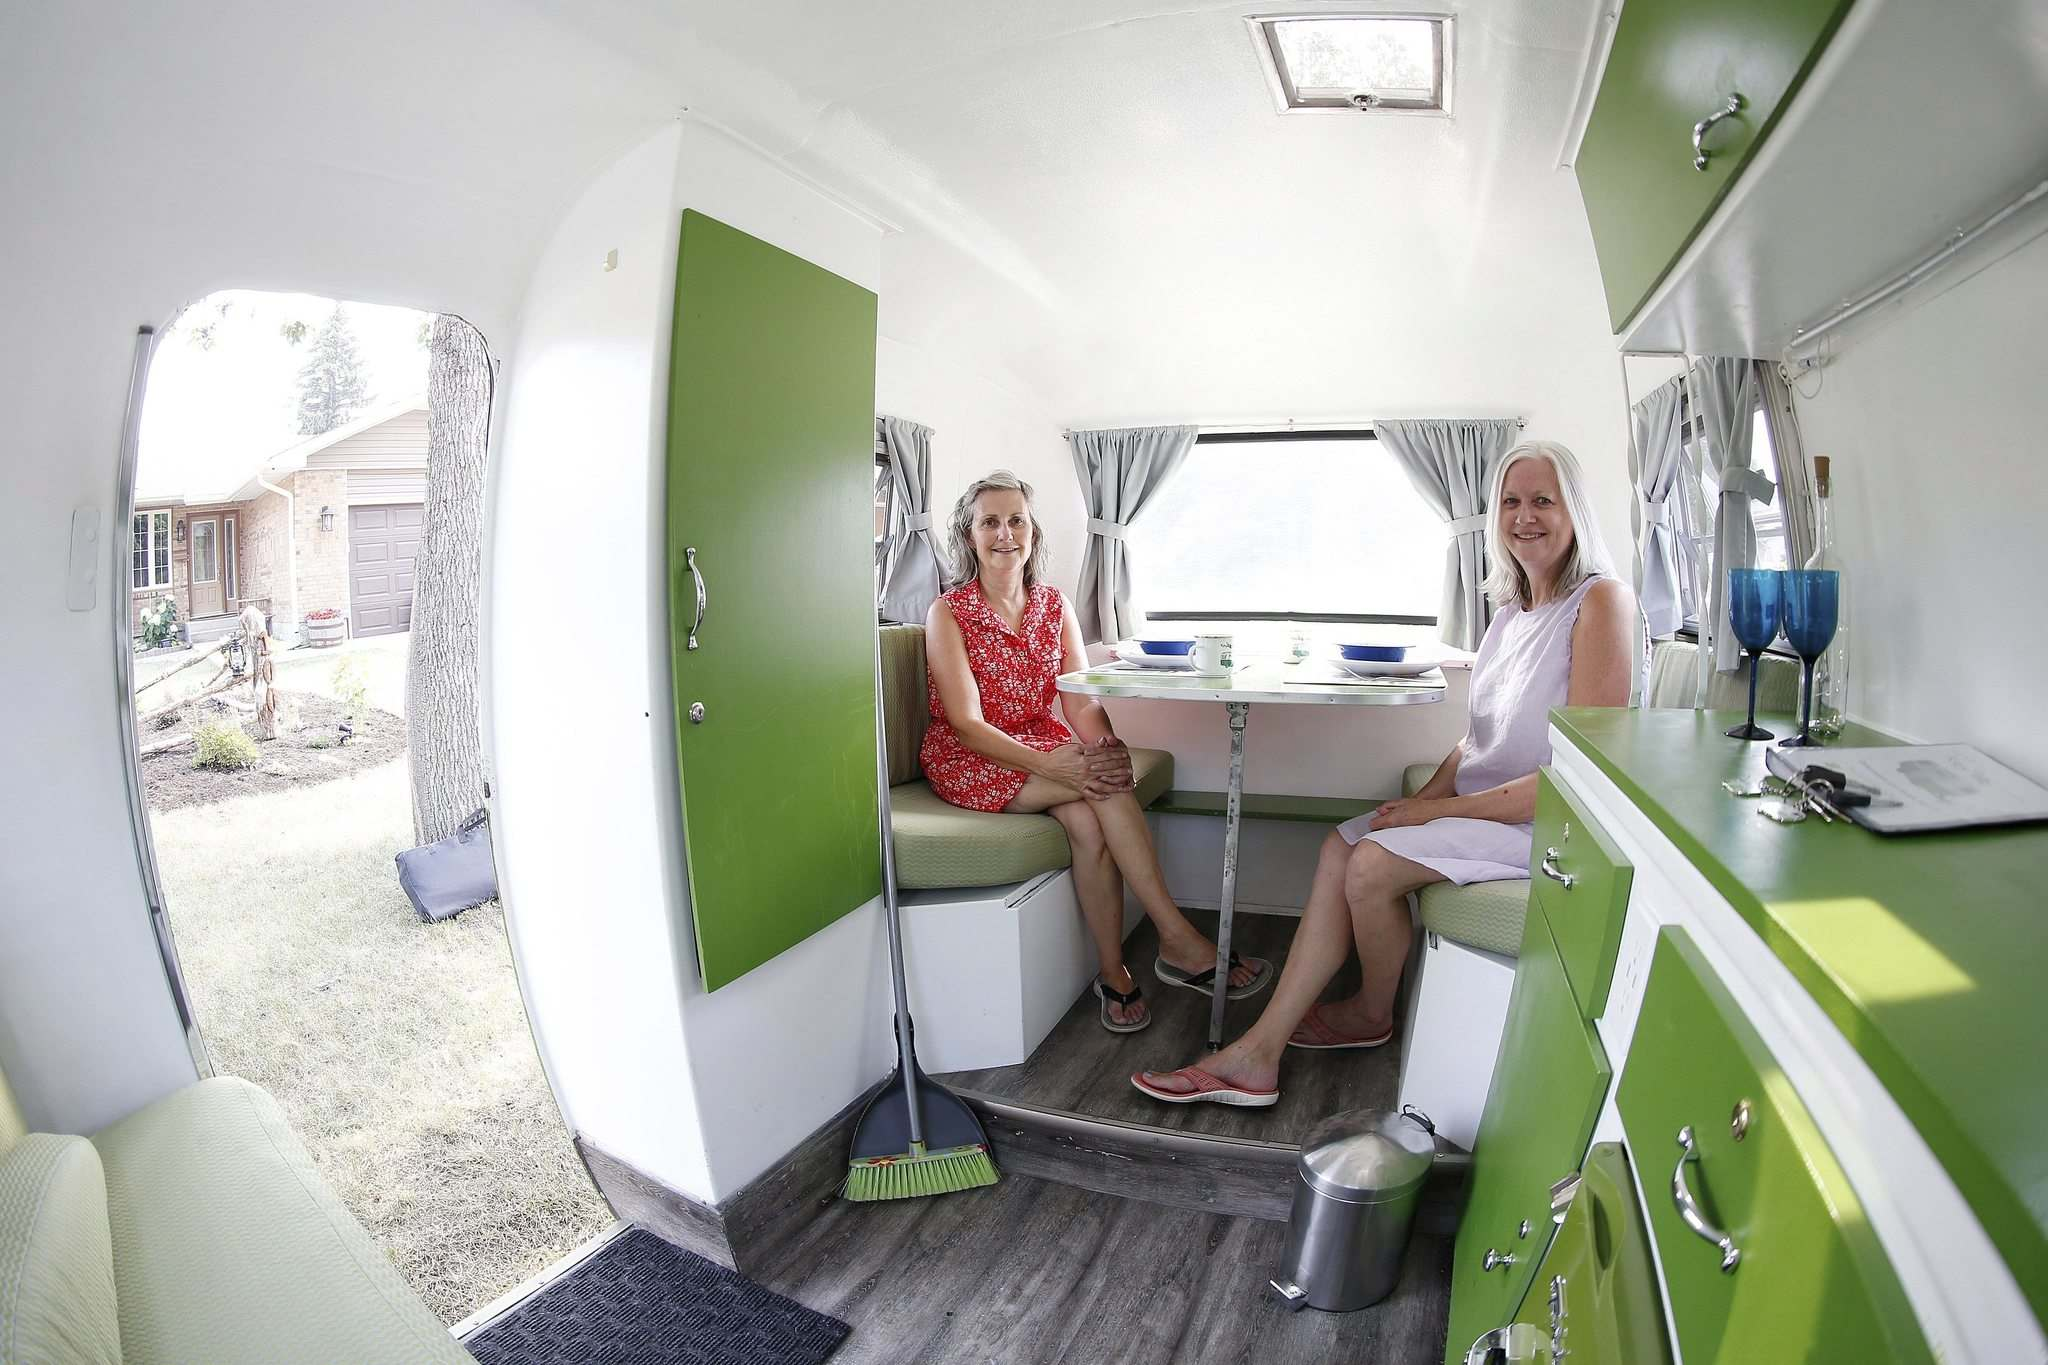 JOHN WOODS / WINNIPEG FREE PRESS</p><p>Friends Susan Hopps (left) and Sharon McCoomas bought and renovated a 1973 Boler last year. When it was first listed as a rental, they had 60 replies in the first hour.</p>